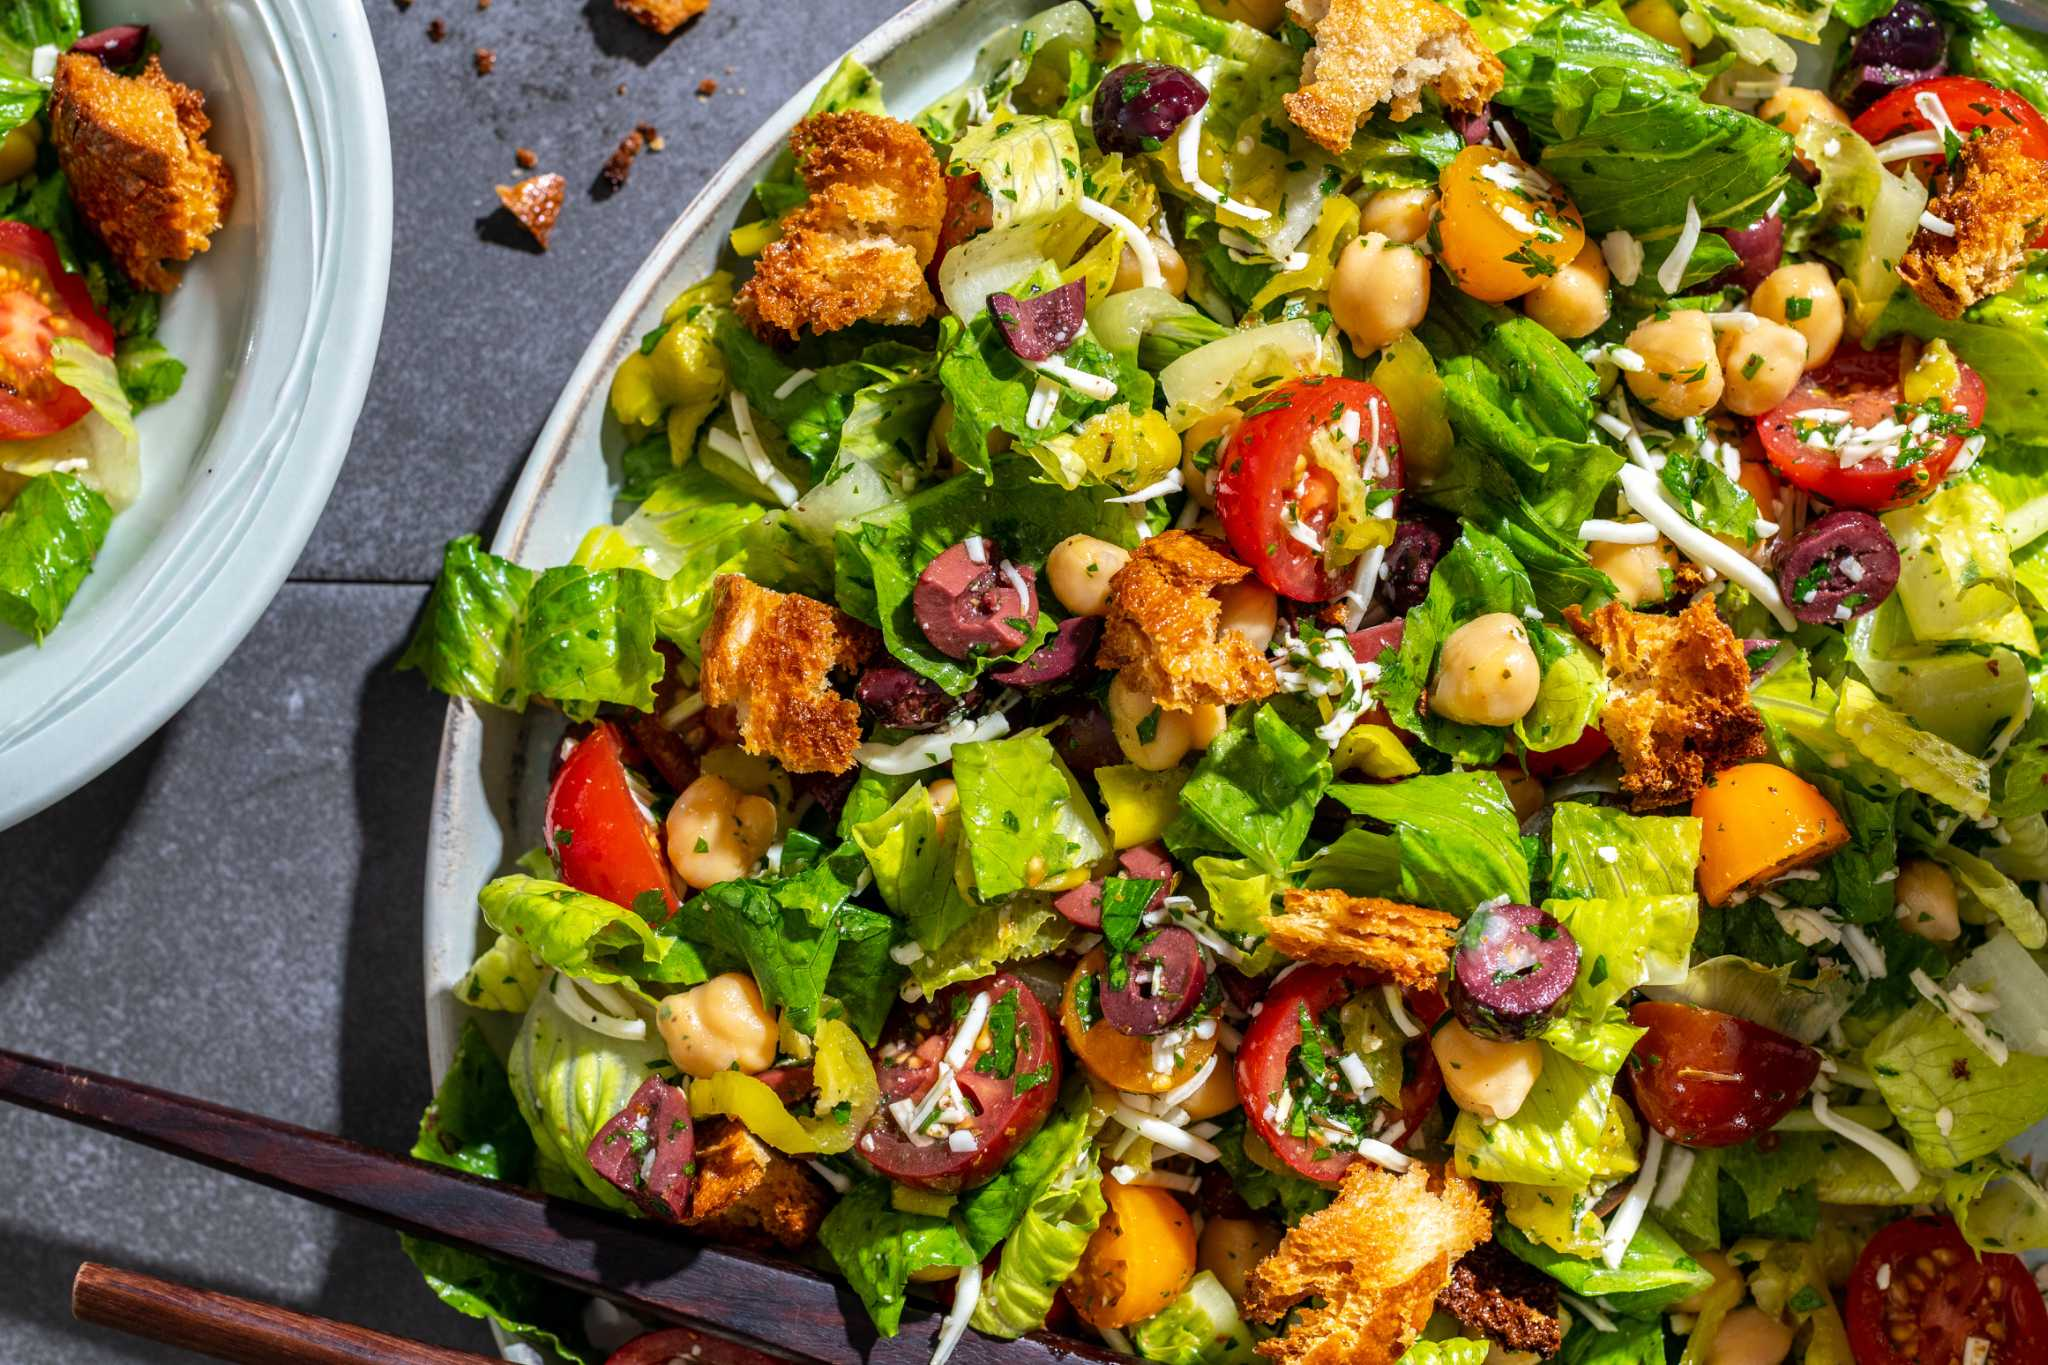 Chop your way to dinner with this flexible, Italian-inspired salad